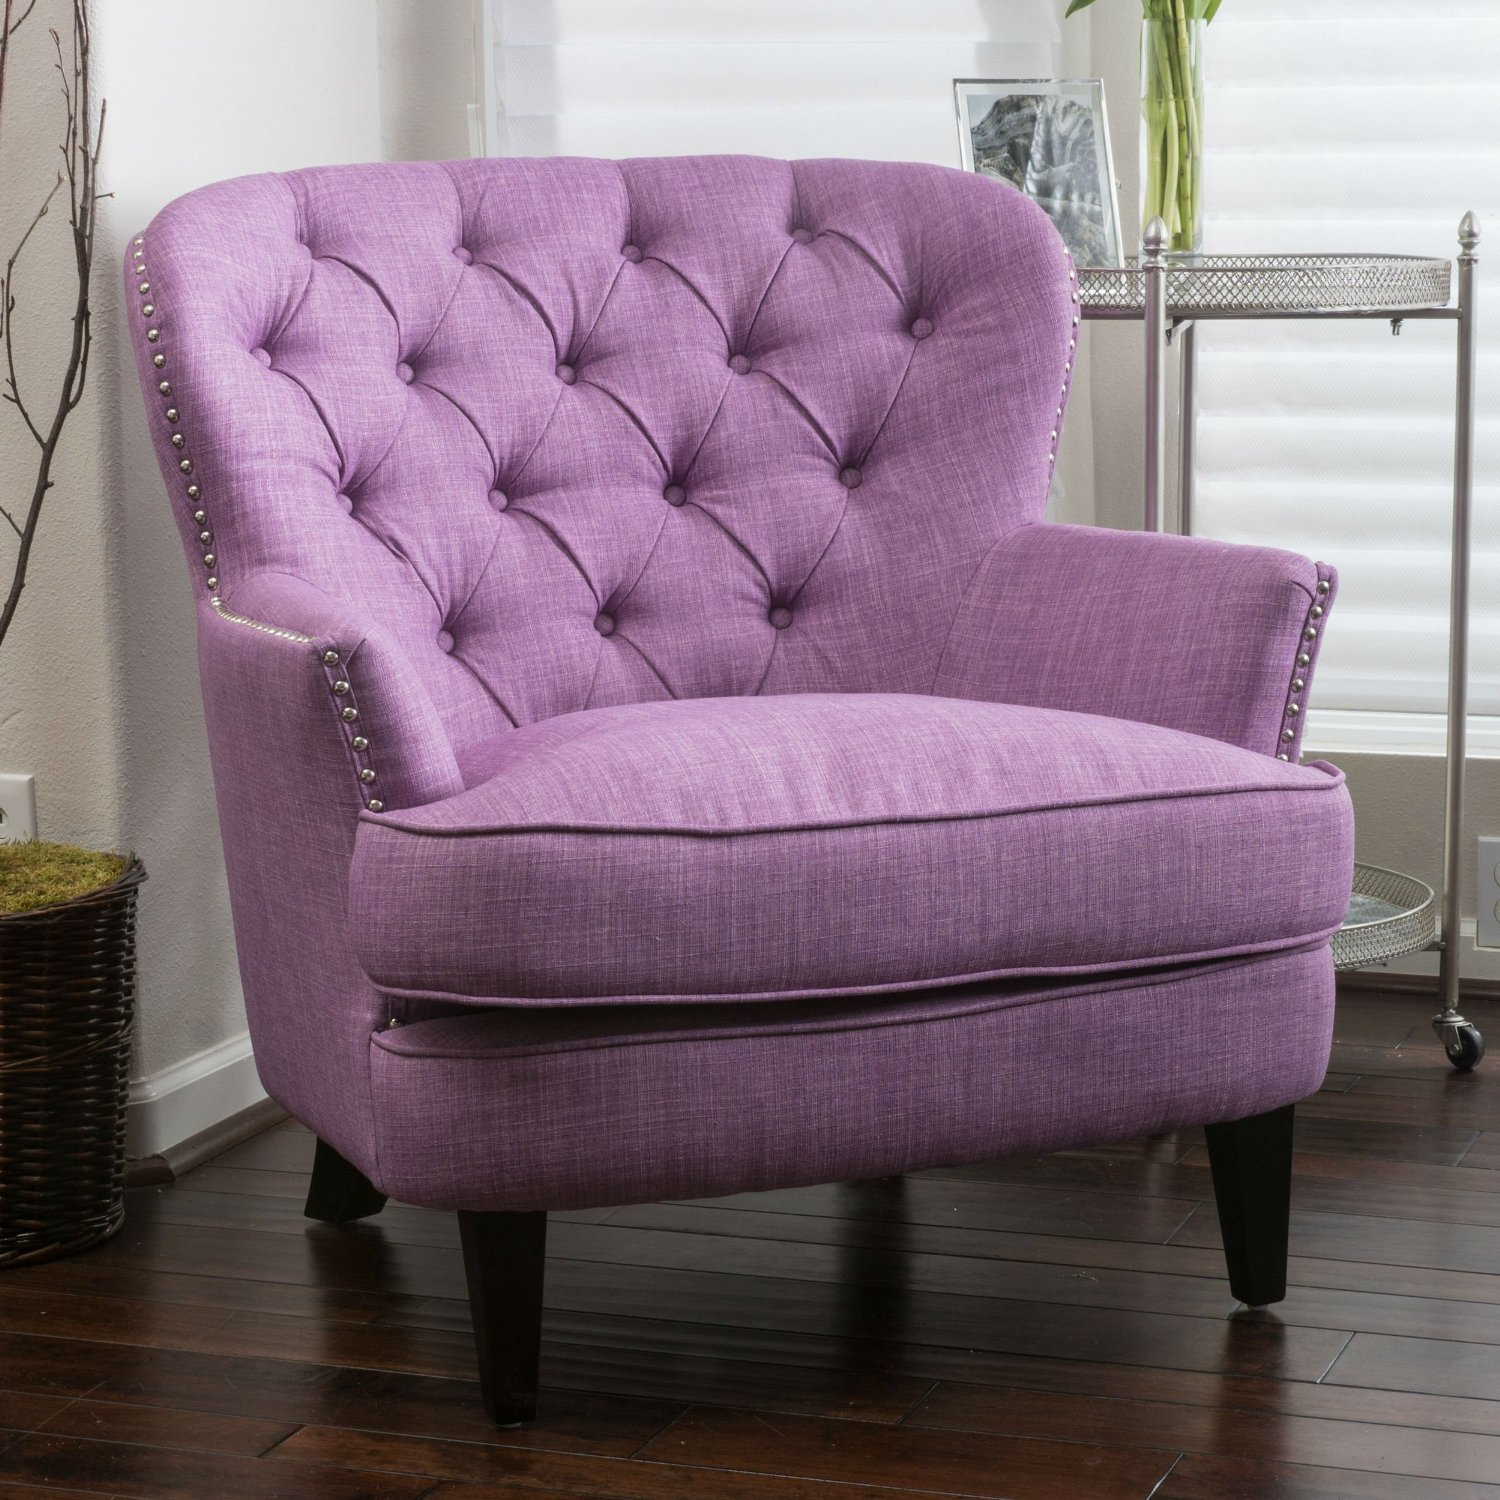 bedroom club chair abode fishing review buy this high back is a modern living room must features purple upholstered